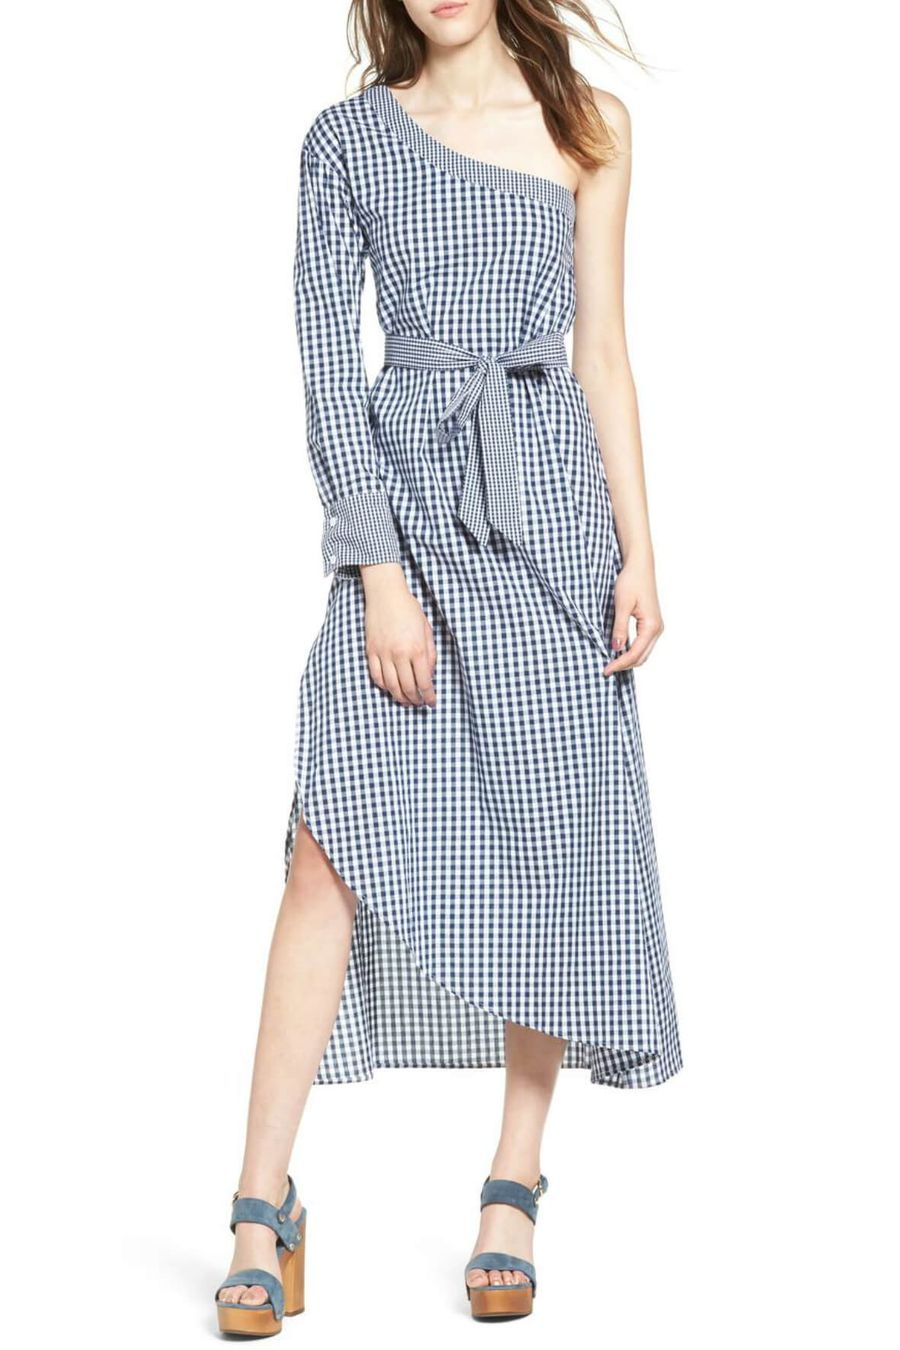 Style Theory_stylekeepers-unforgettable-dress-3